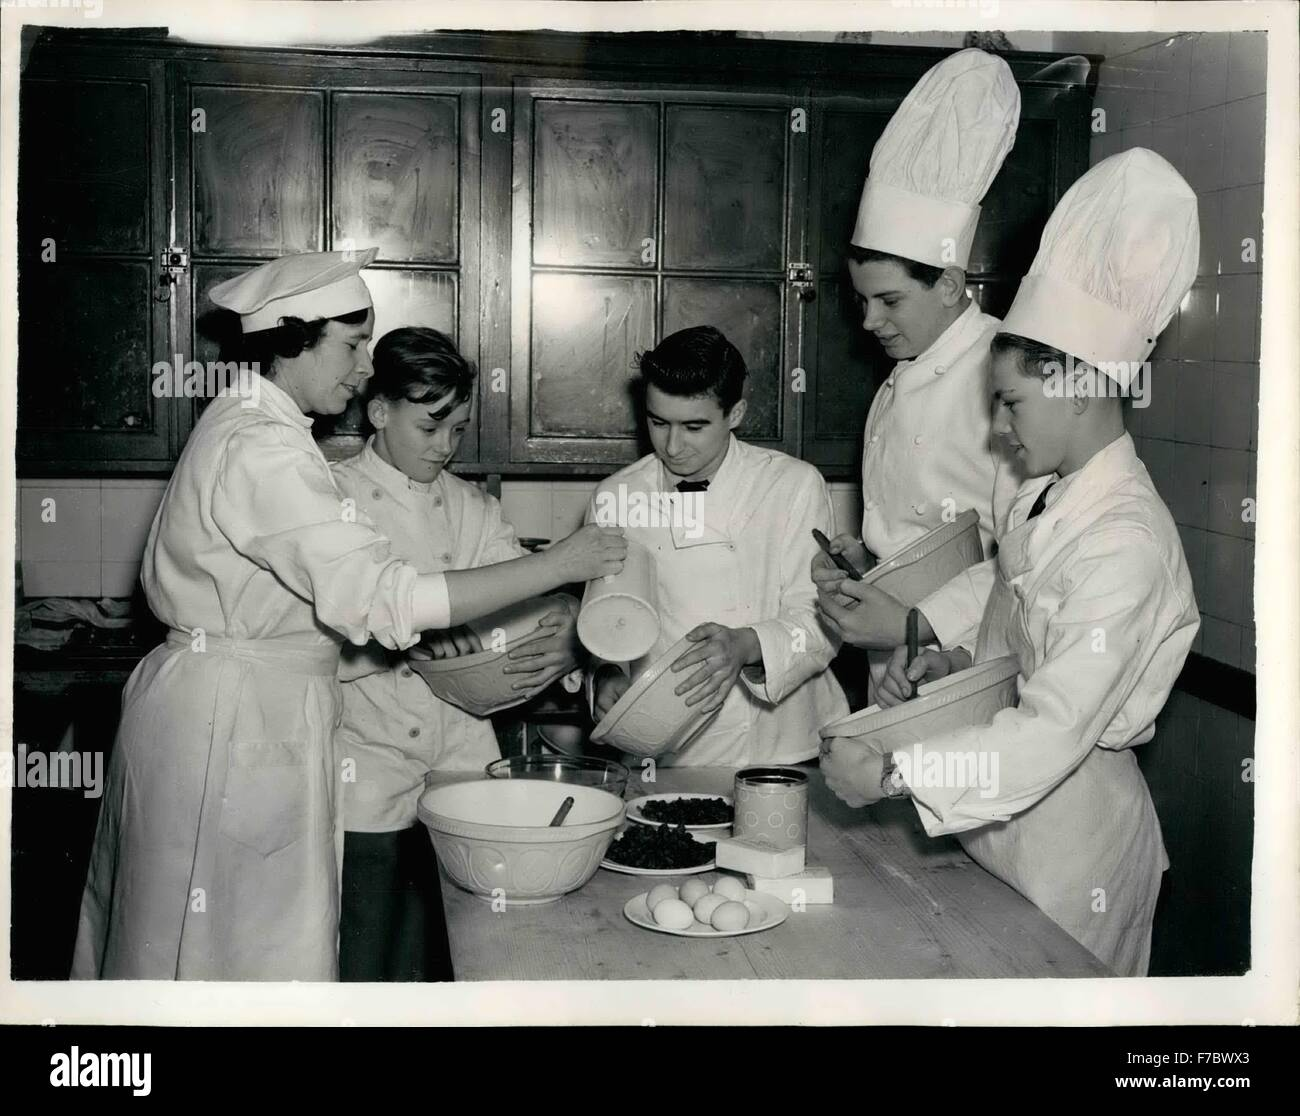 1962 - The boys mix the puddings. Cookery class prepares for Christmas: Cookery Teacher Mrs. Marsden keeps a watchful - Stock Image